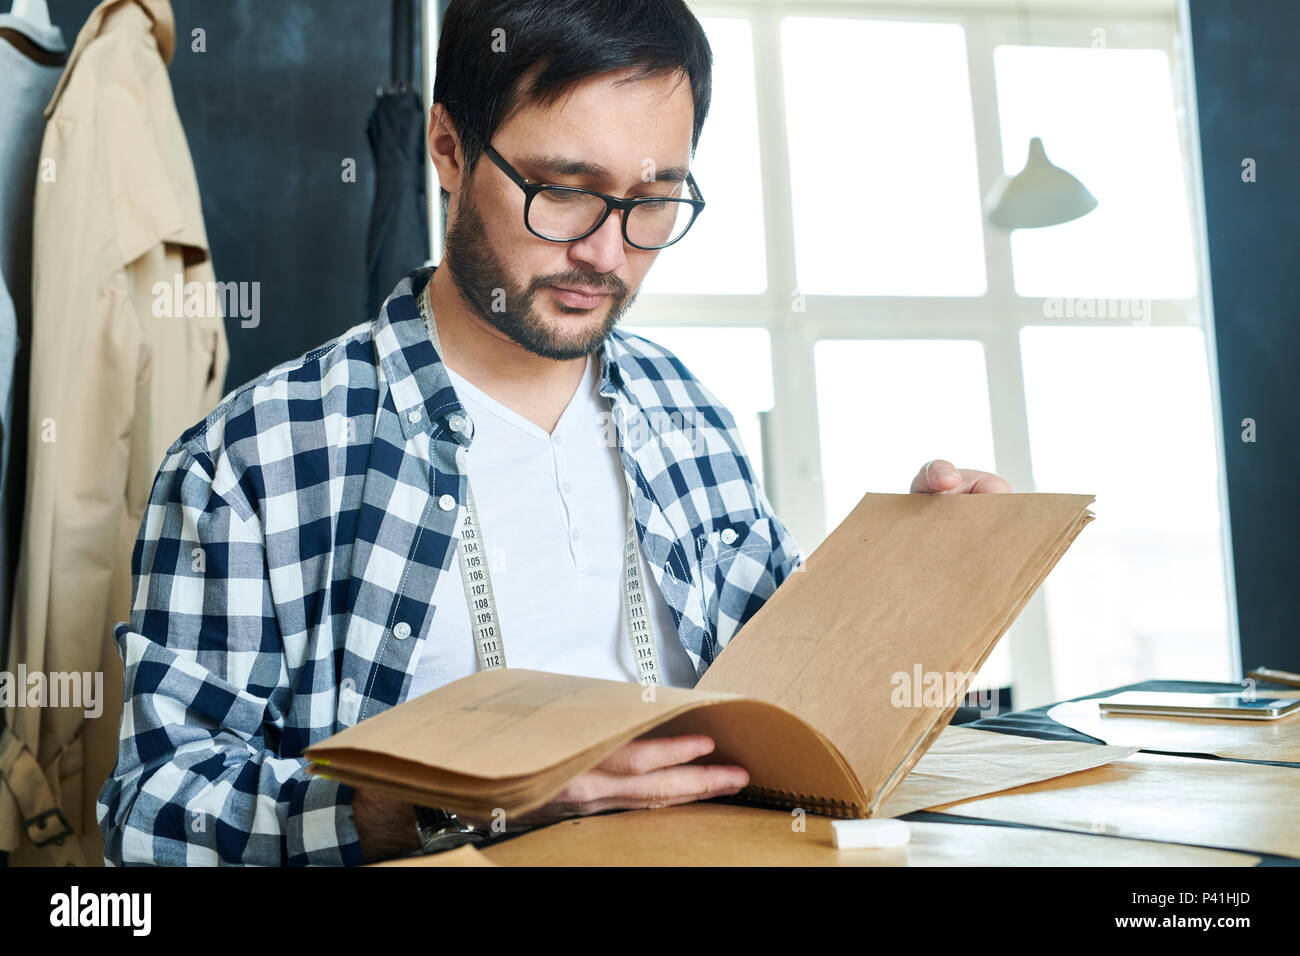 Man watching sketchbook with clothing models - Stock Image